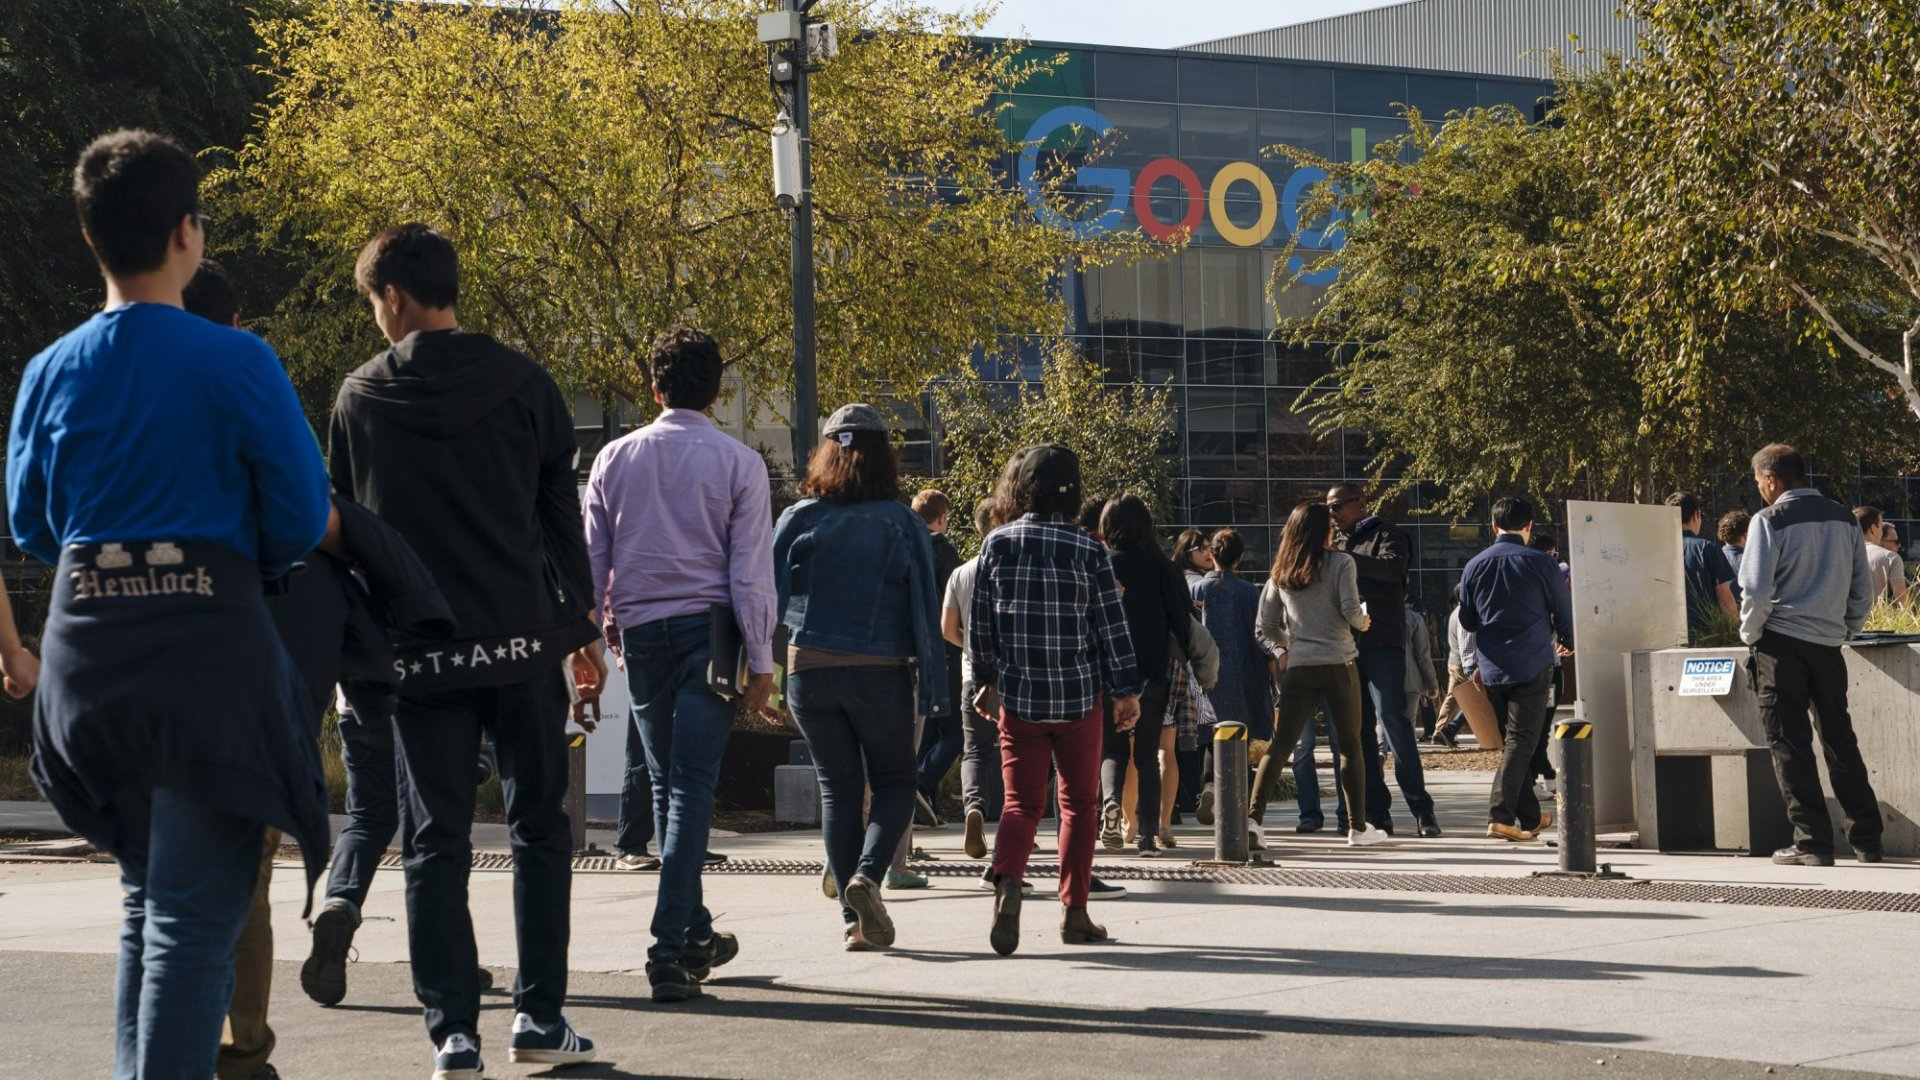 Google Has a Terrible, Degrading Policy. Here's Why You Should Adopt it.